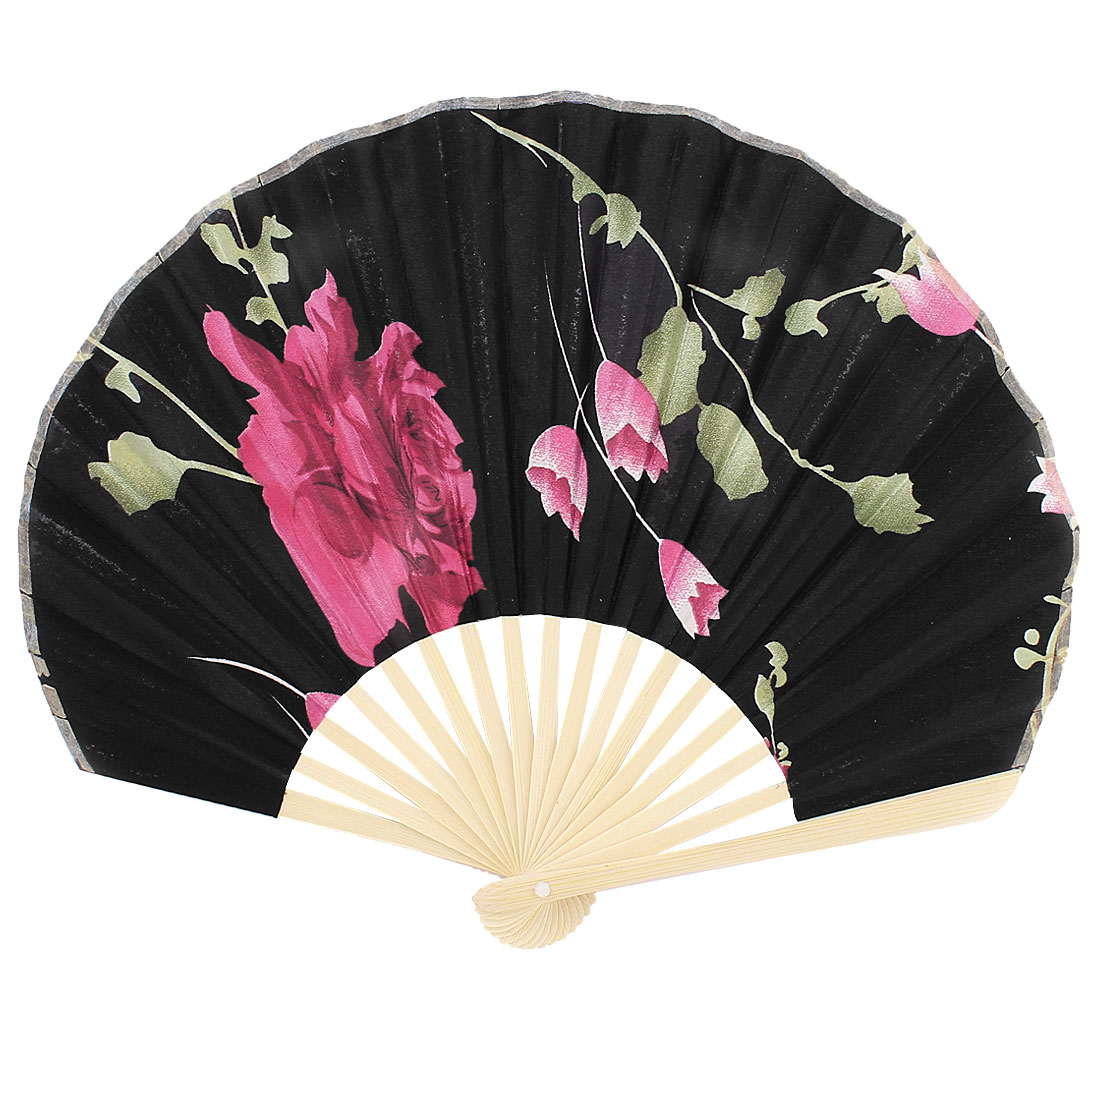 Party Ornament Bamboo Ribs Fabric Blooming Flower Pattern Folding Hand Fan Black